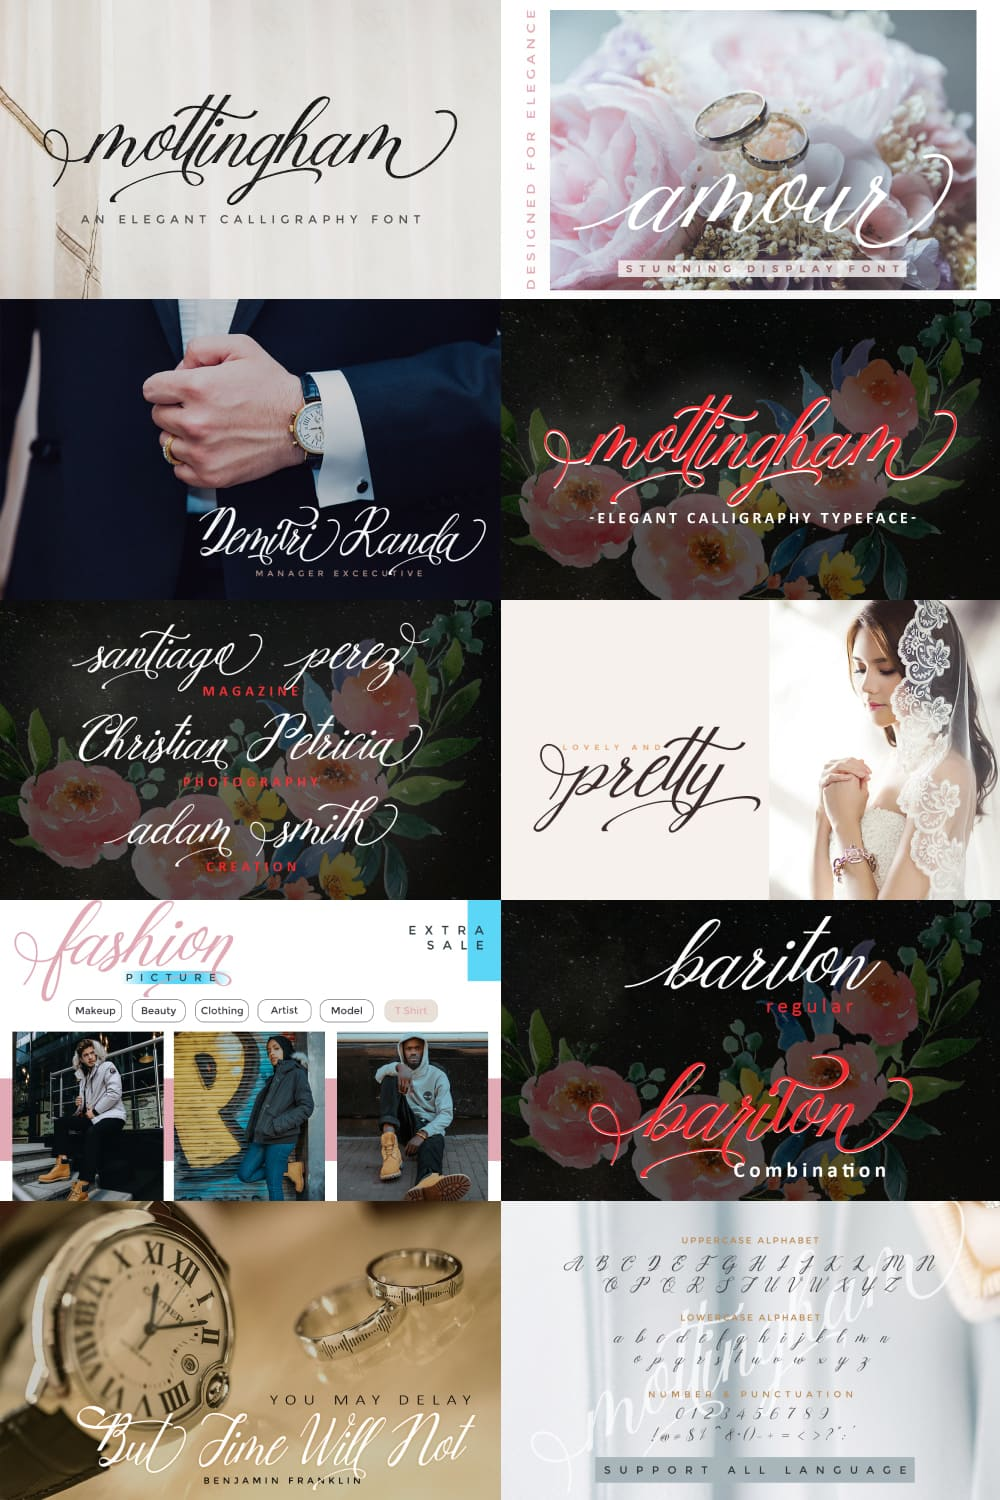 This is handwritten stylish copperplate calligraphy fonts, combines from copperplate to contemporary typeface with a dancing baseline, classic and elegant touch.